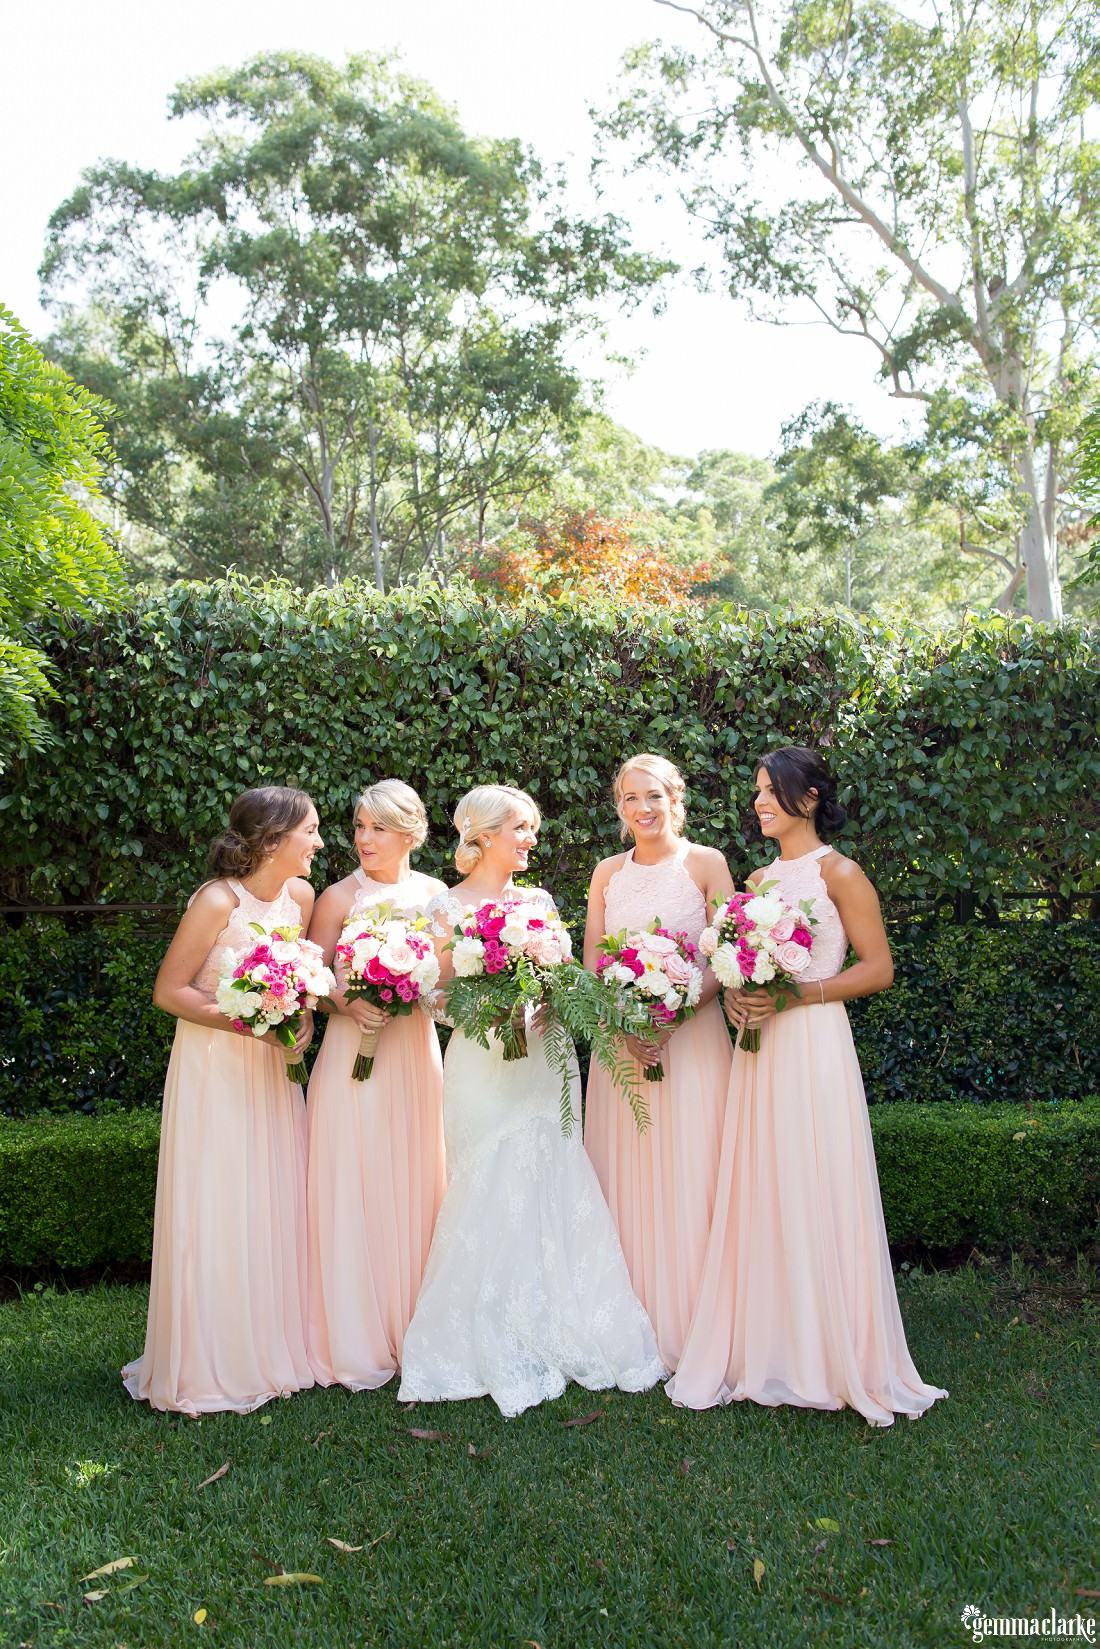 A bride and four bridesmaids holding their bouquets and standing in front of a hedge